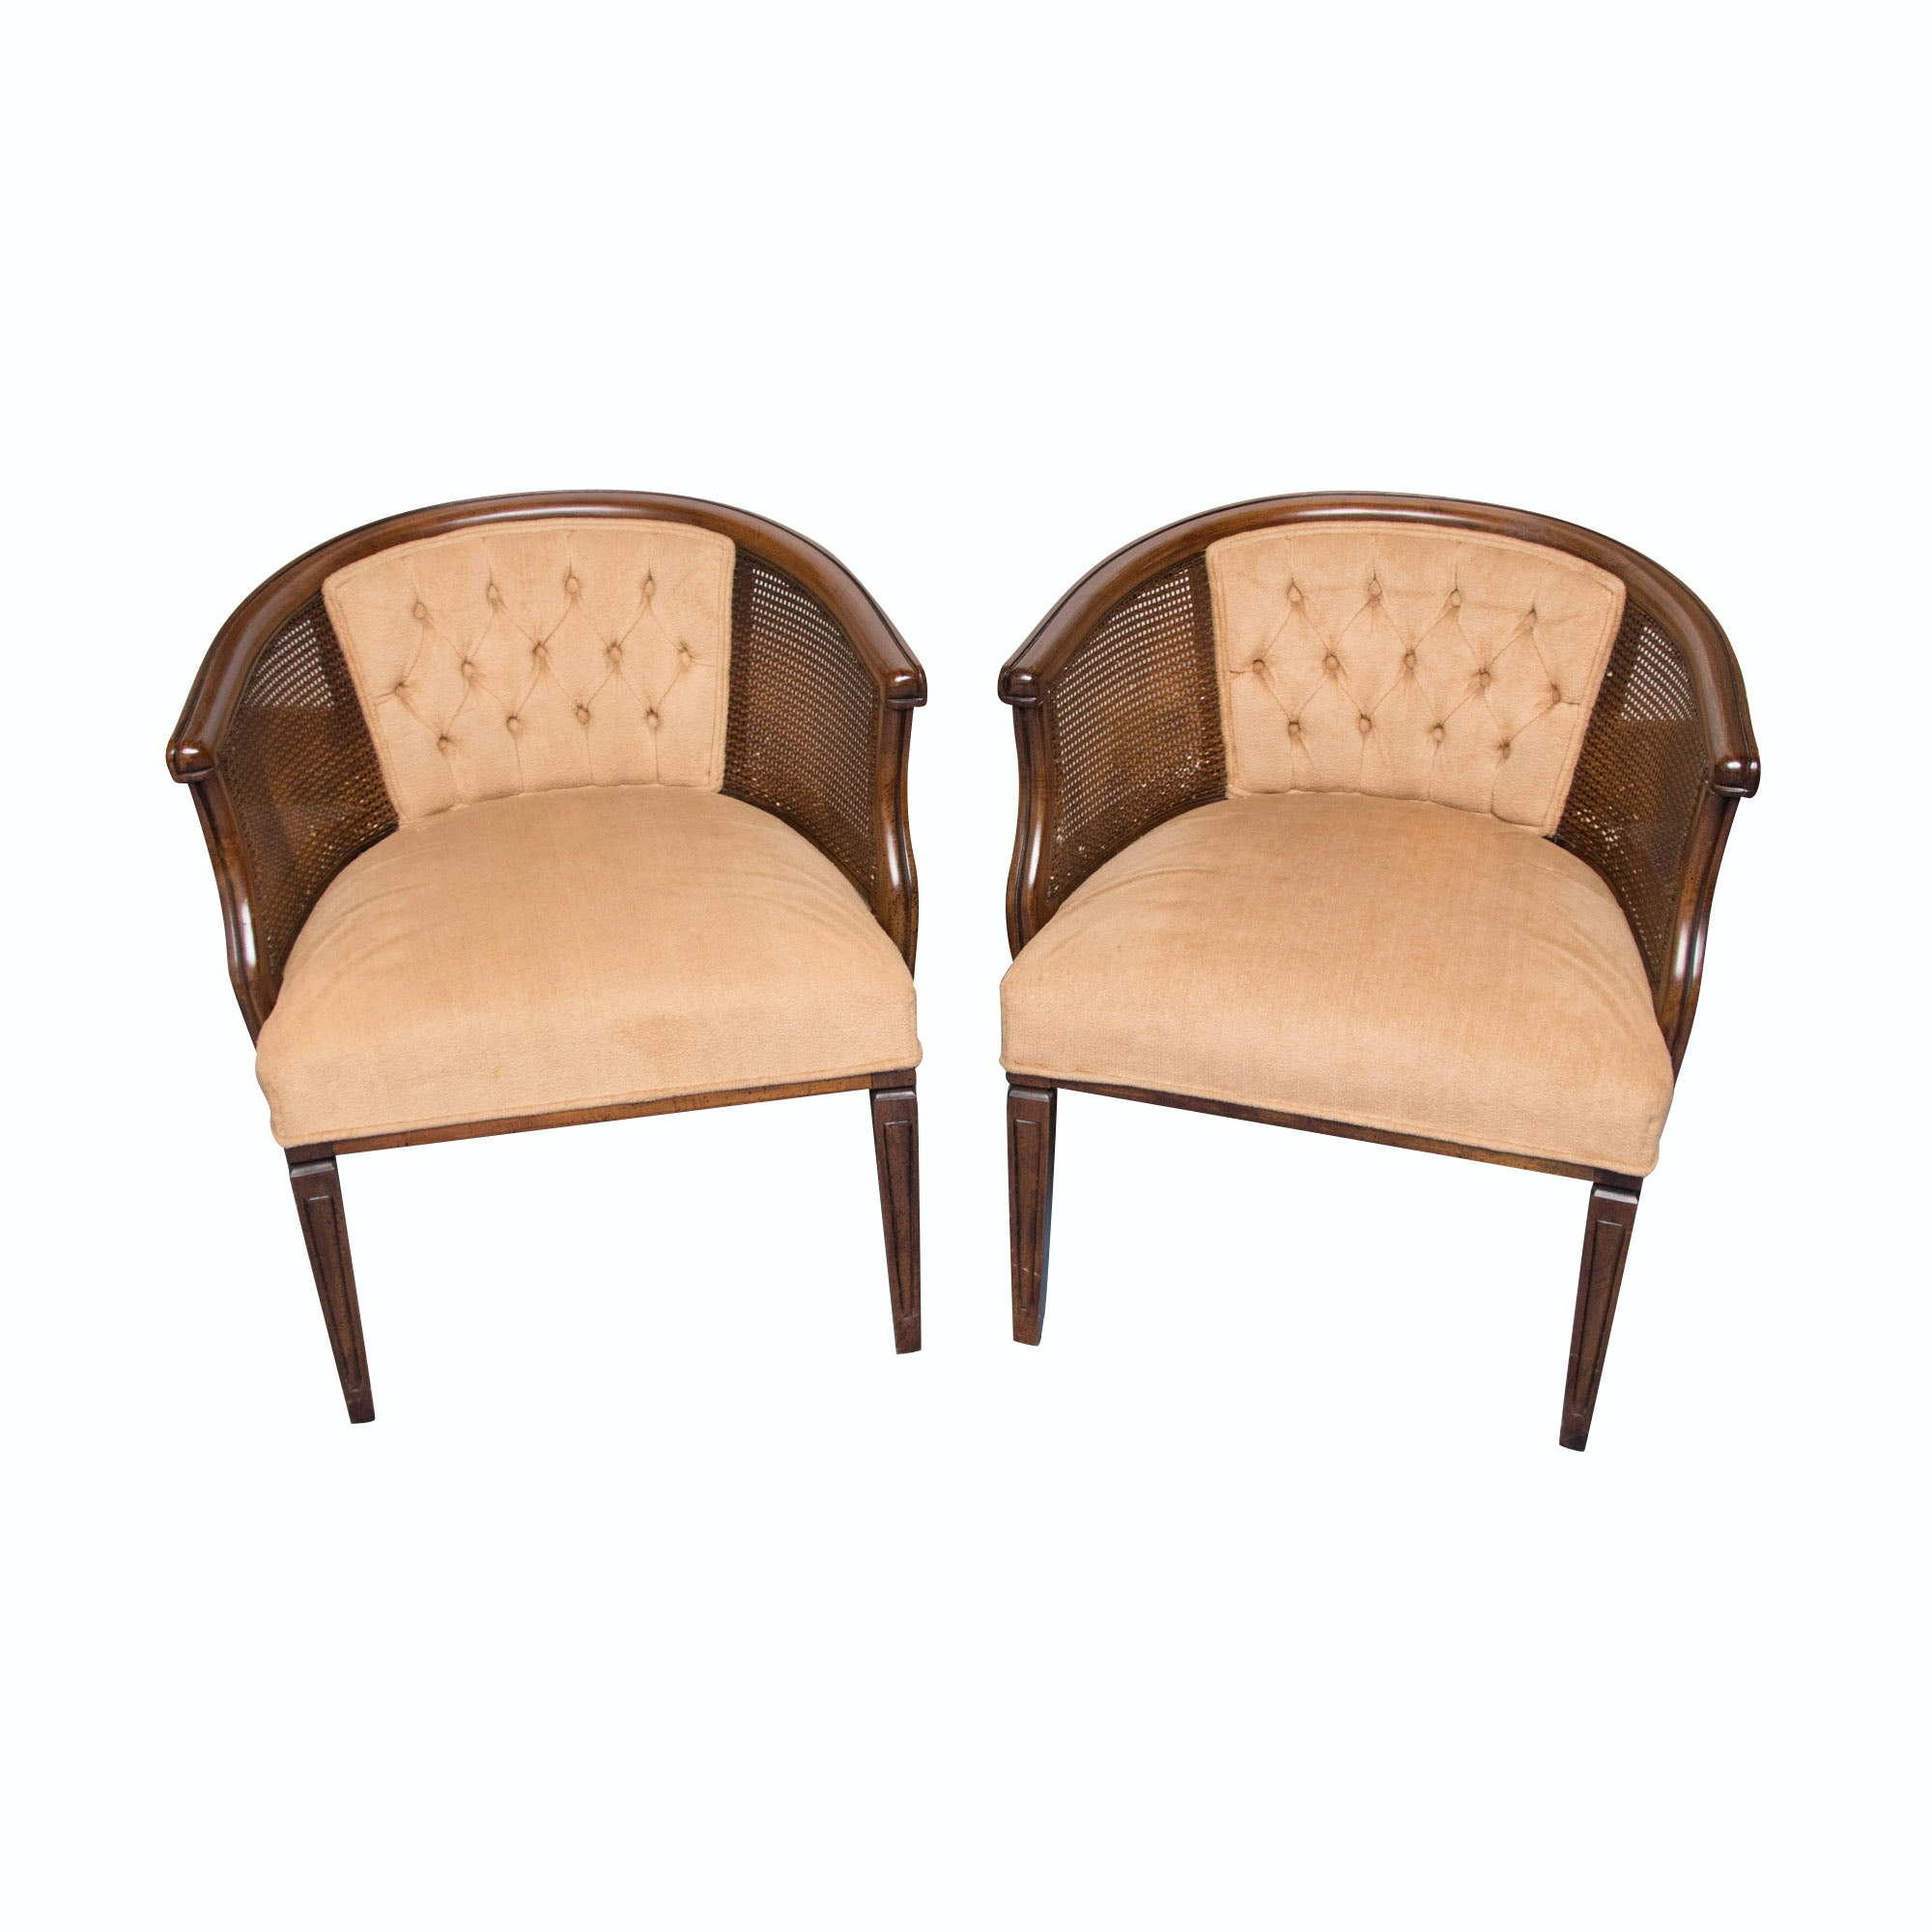 Mid-Century Cane and Upholstery Armchairs